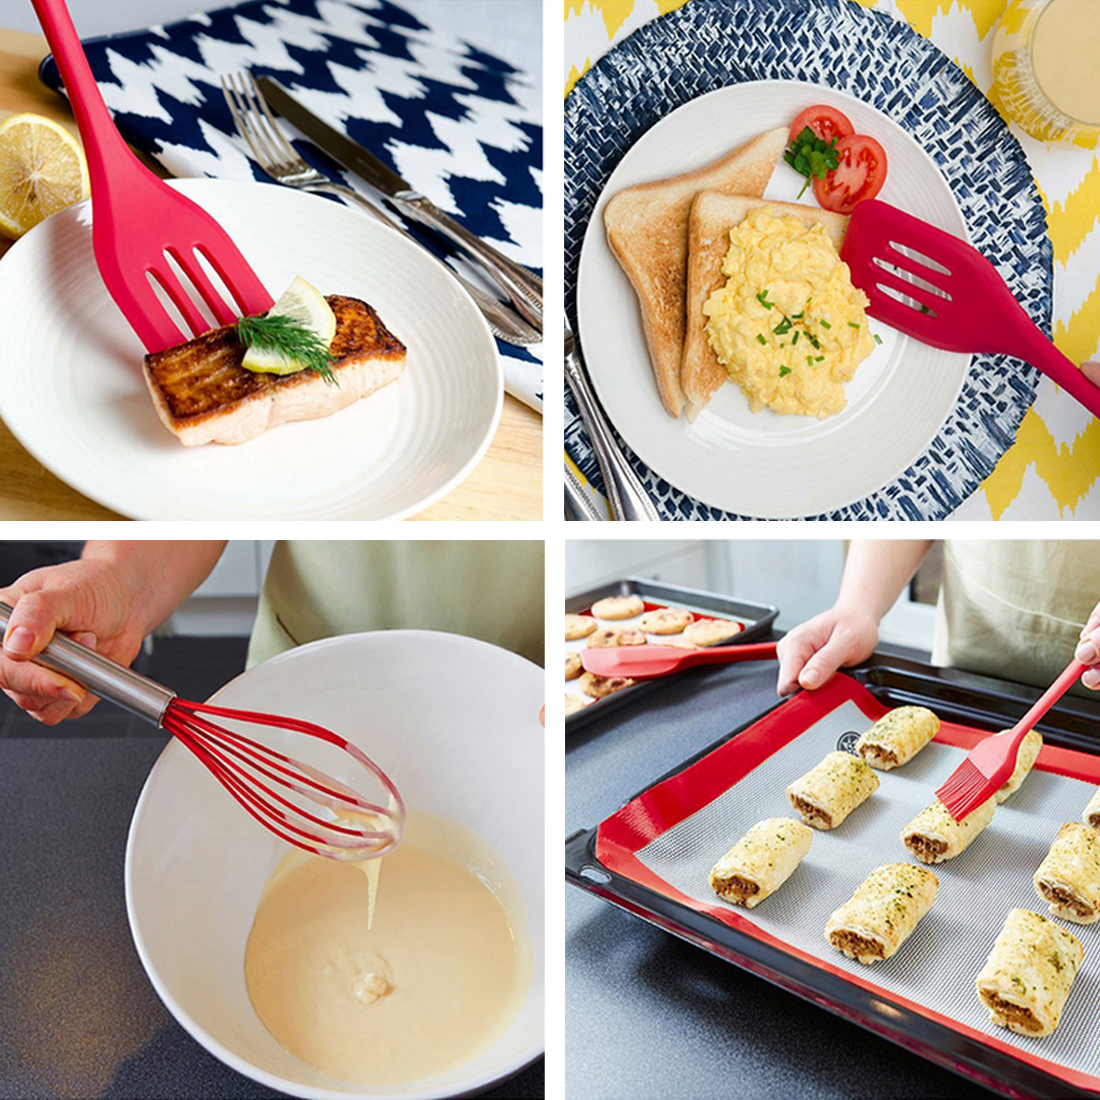 Pop 10Pc Heat Resistant Silicone Cookware Set Nonstick Cooking Tools Kitchen & Baking To ...